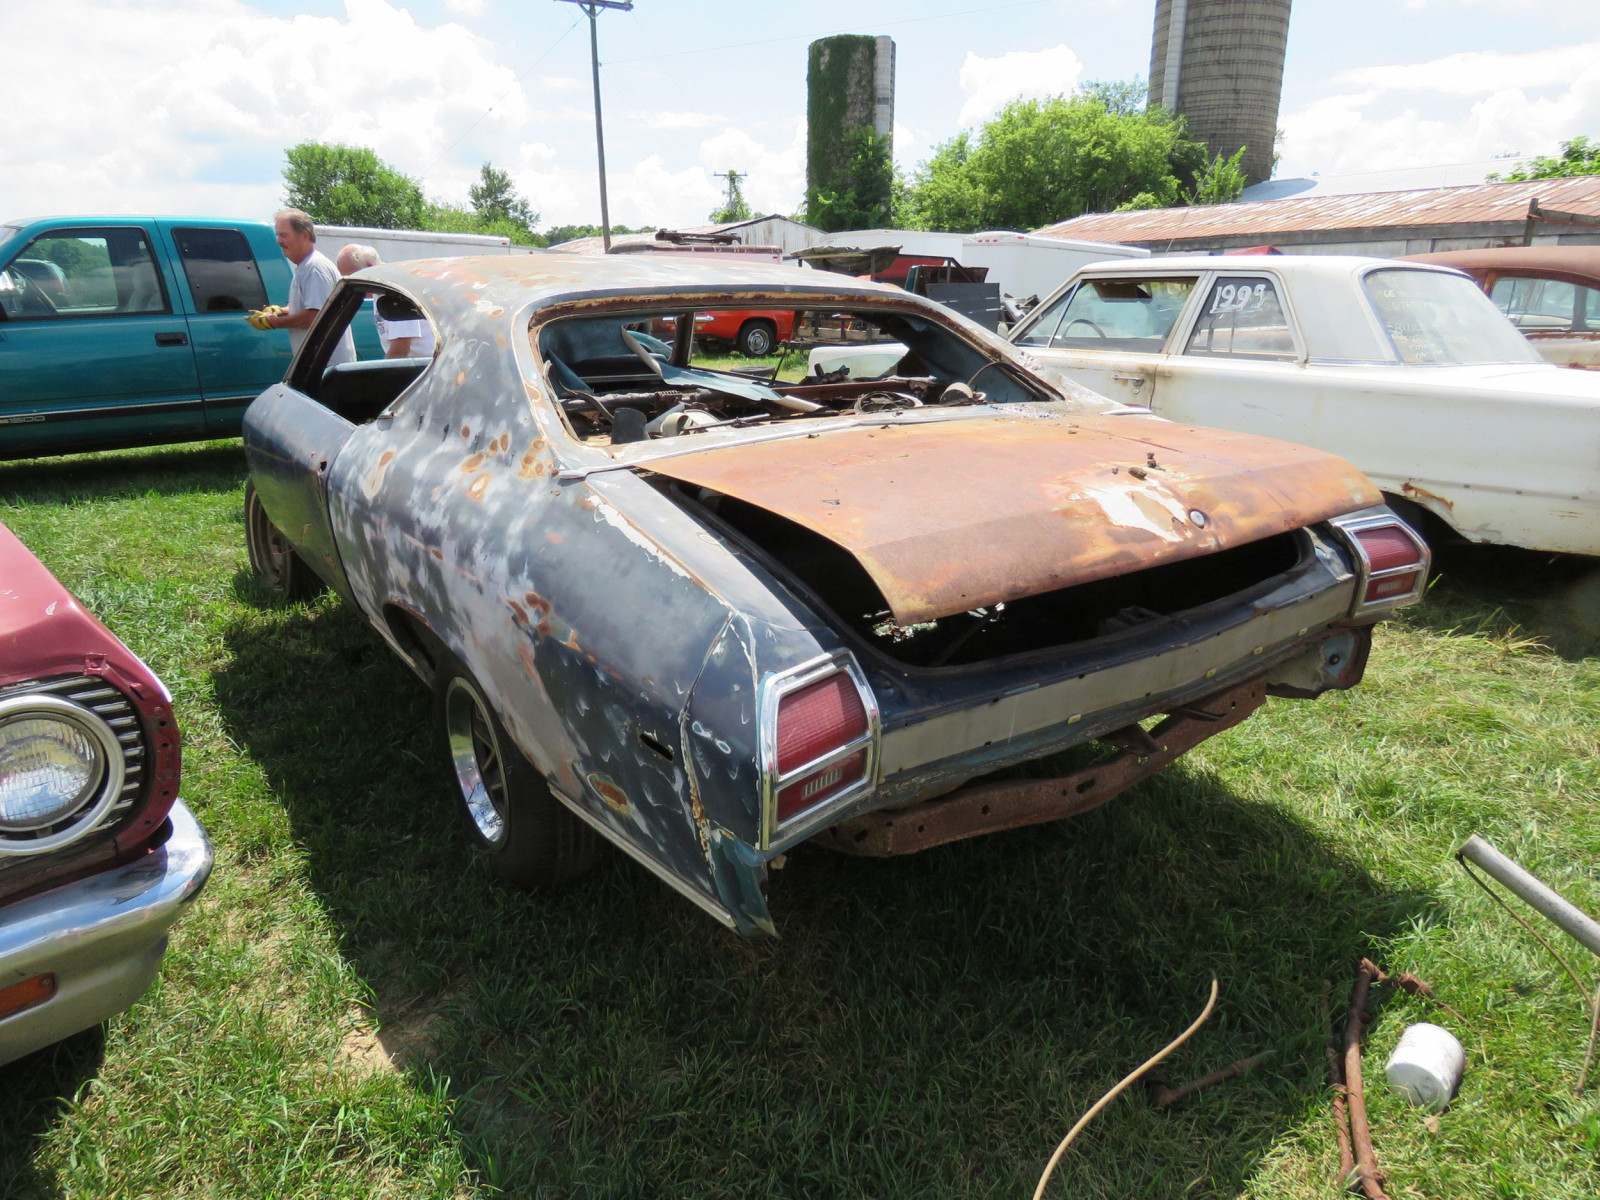 1969 Chevrolet Chevelle Rolling Body for Project or Parts - Image 6